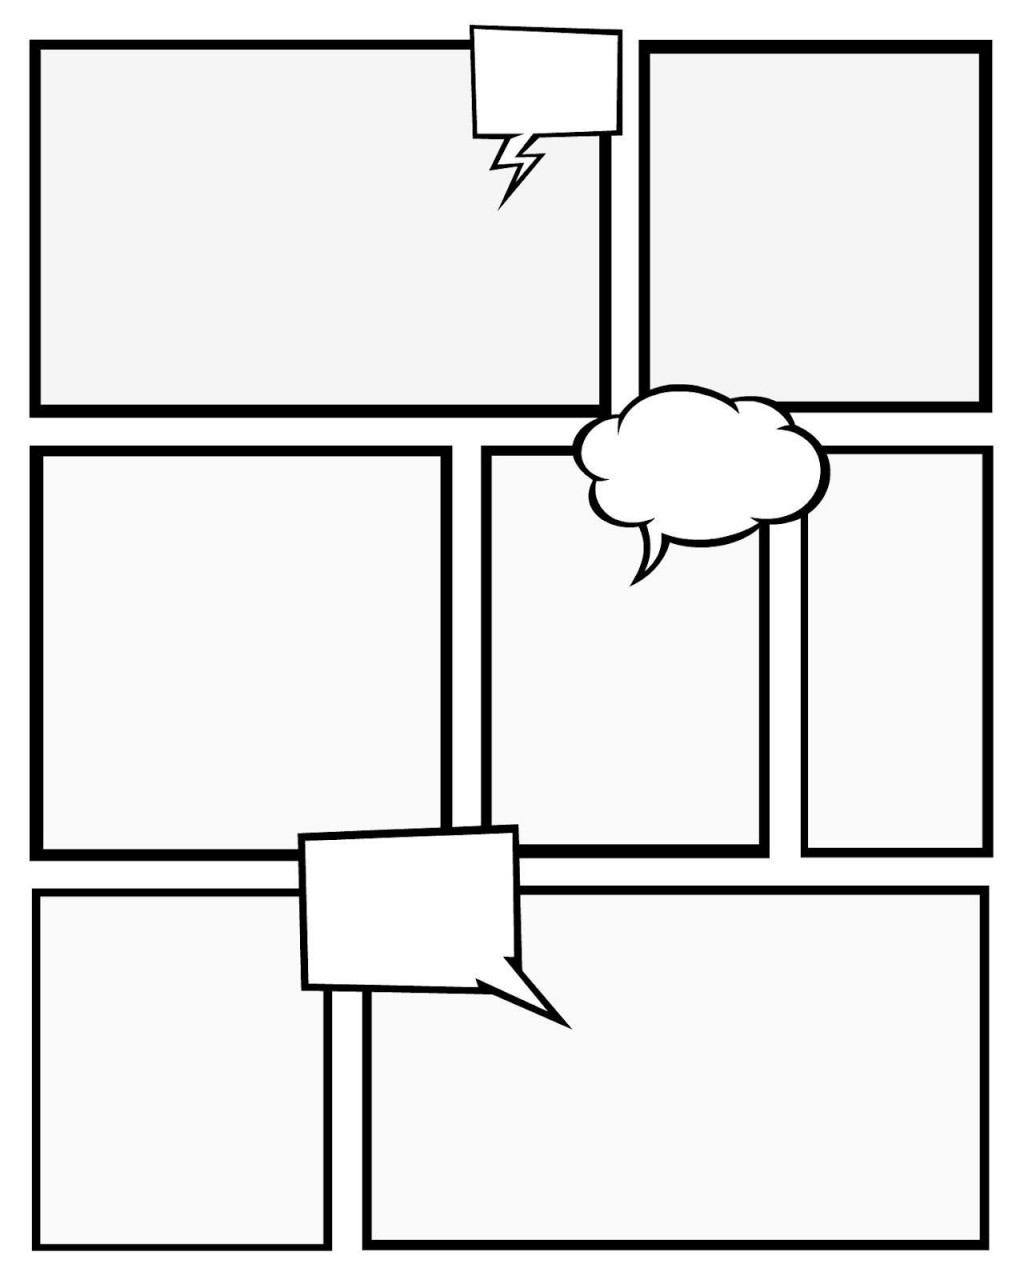 008 Top Comic Strip Layout For Word Image  Book Script Template Microsoft DocLarge